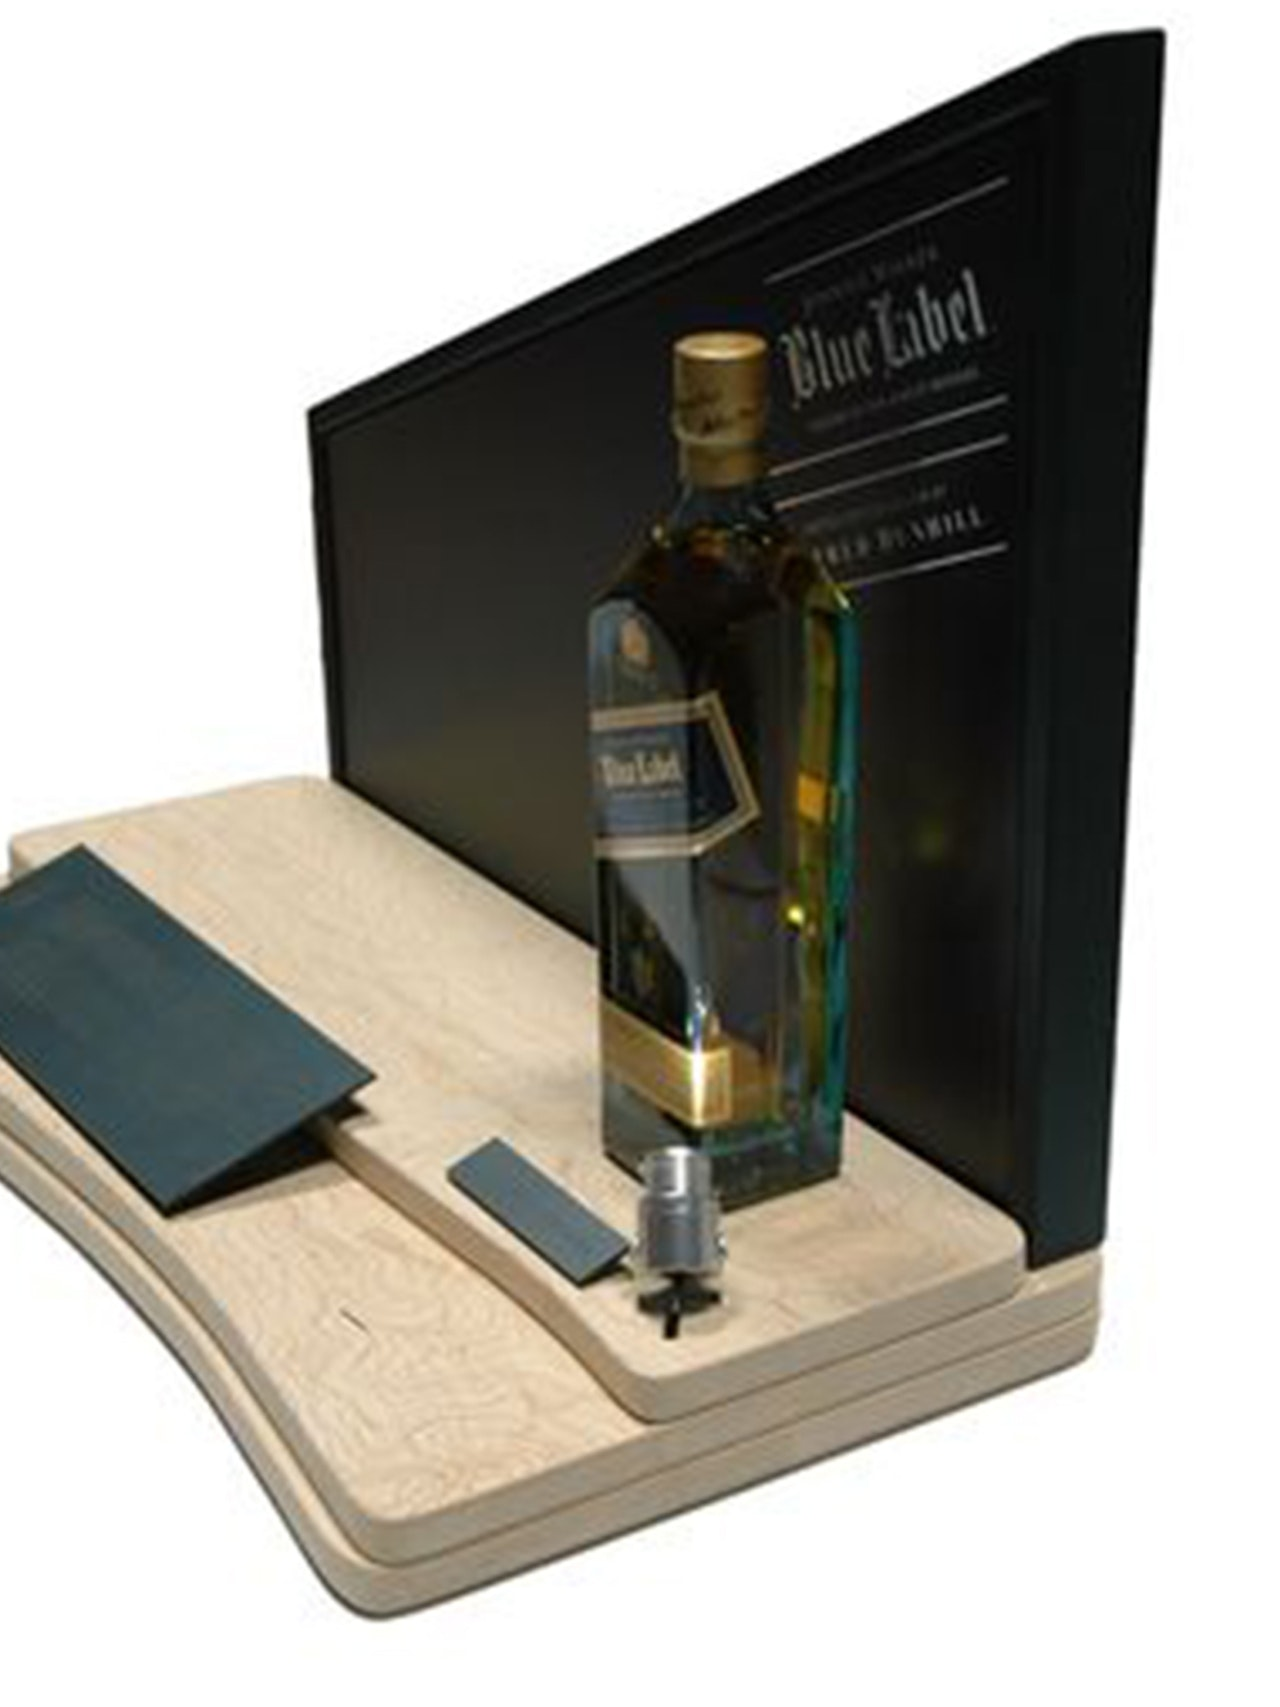 JOHNNIE WALKER & ALFRED DUNHILL LIMITED EDITION DISPLAYS